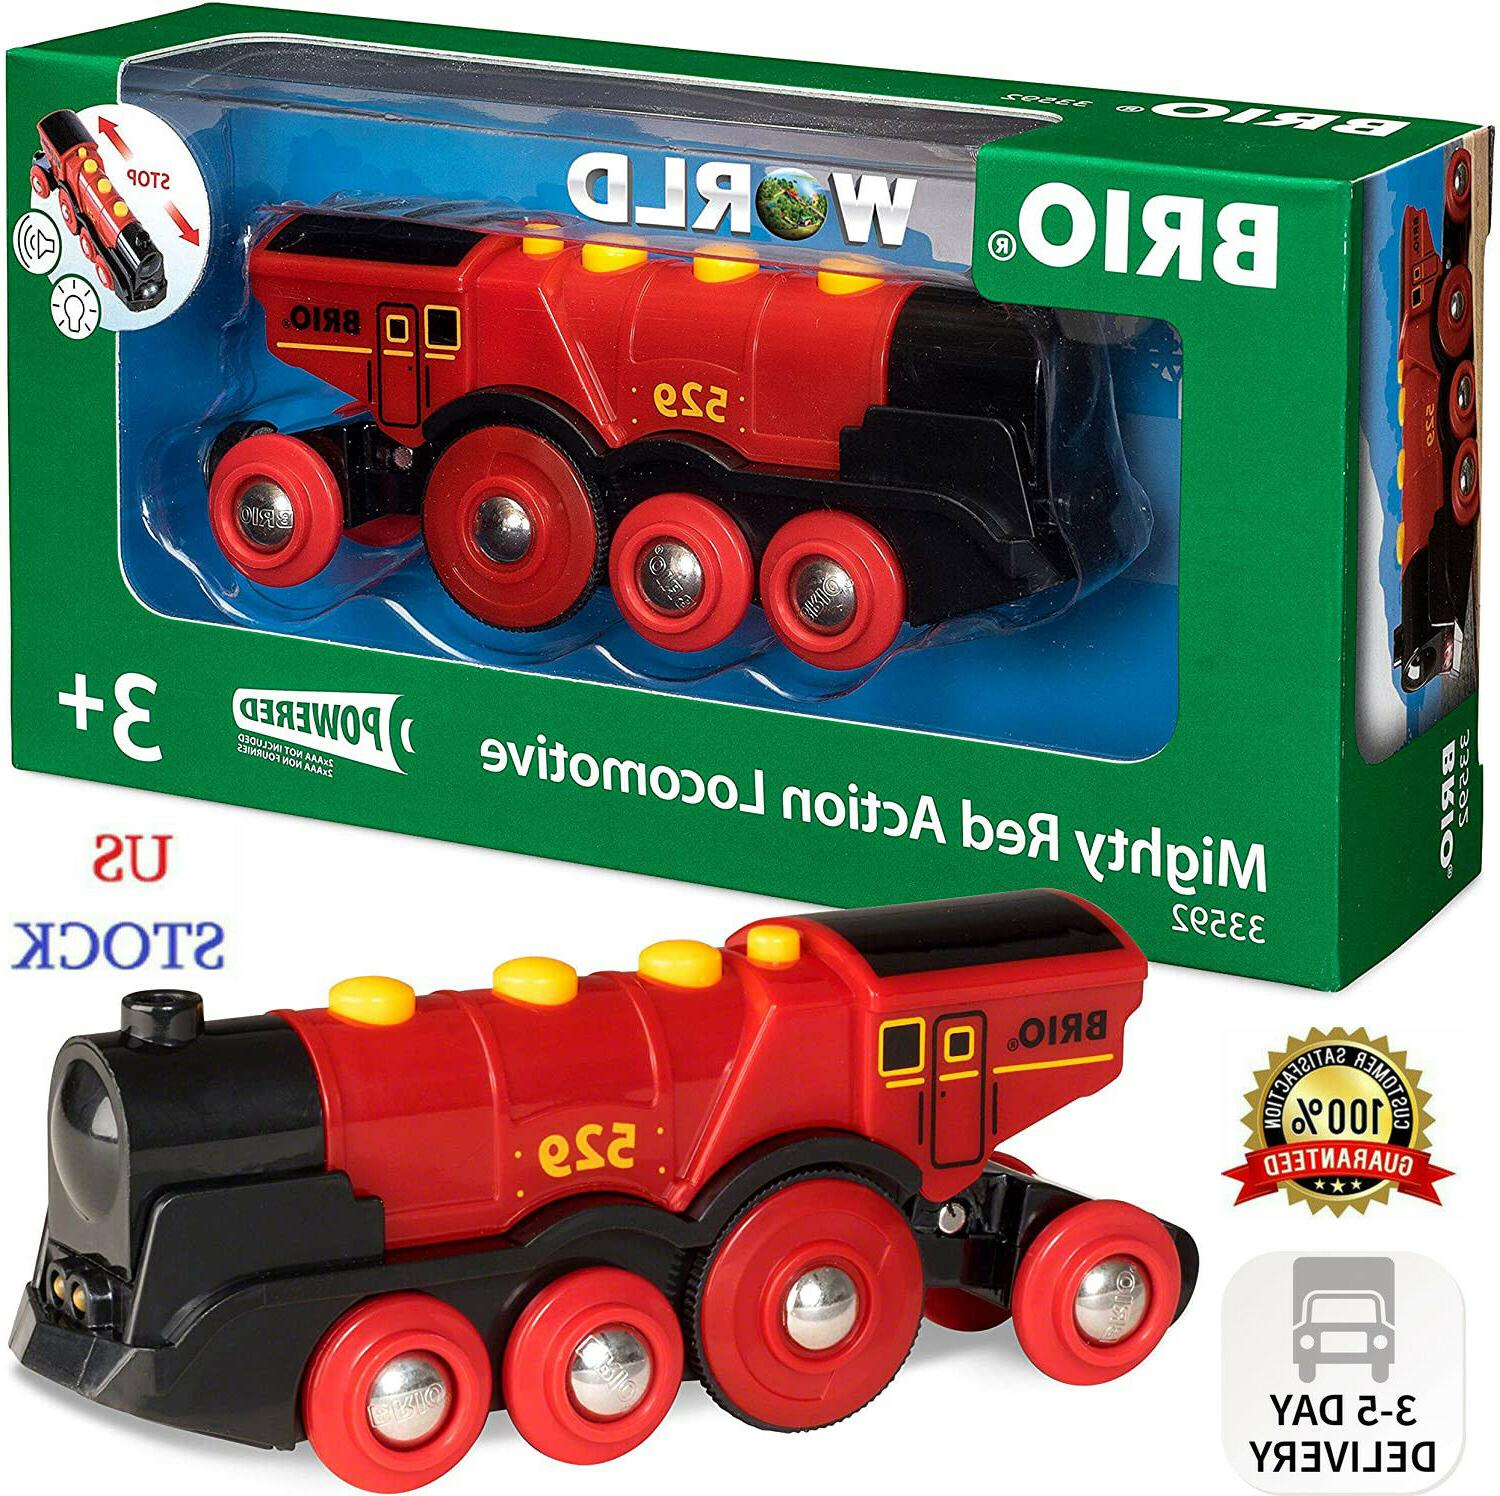 world 33592 mighty red action locomotive battery